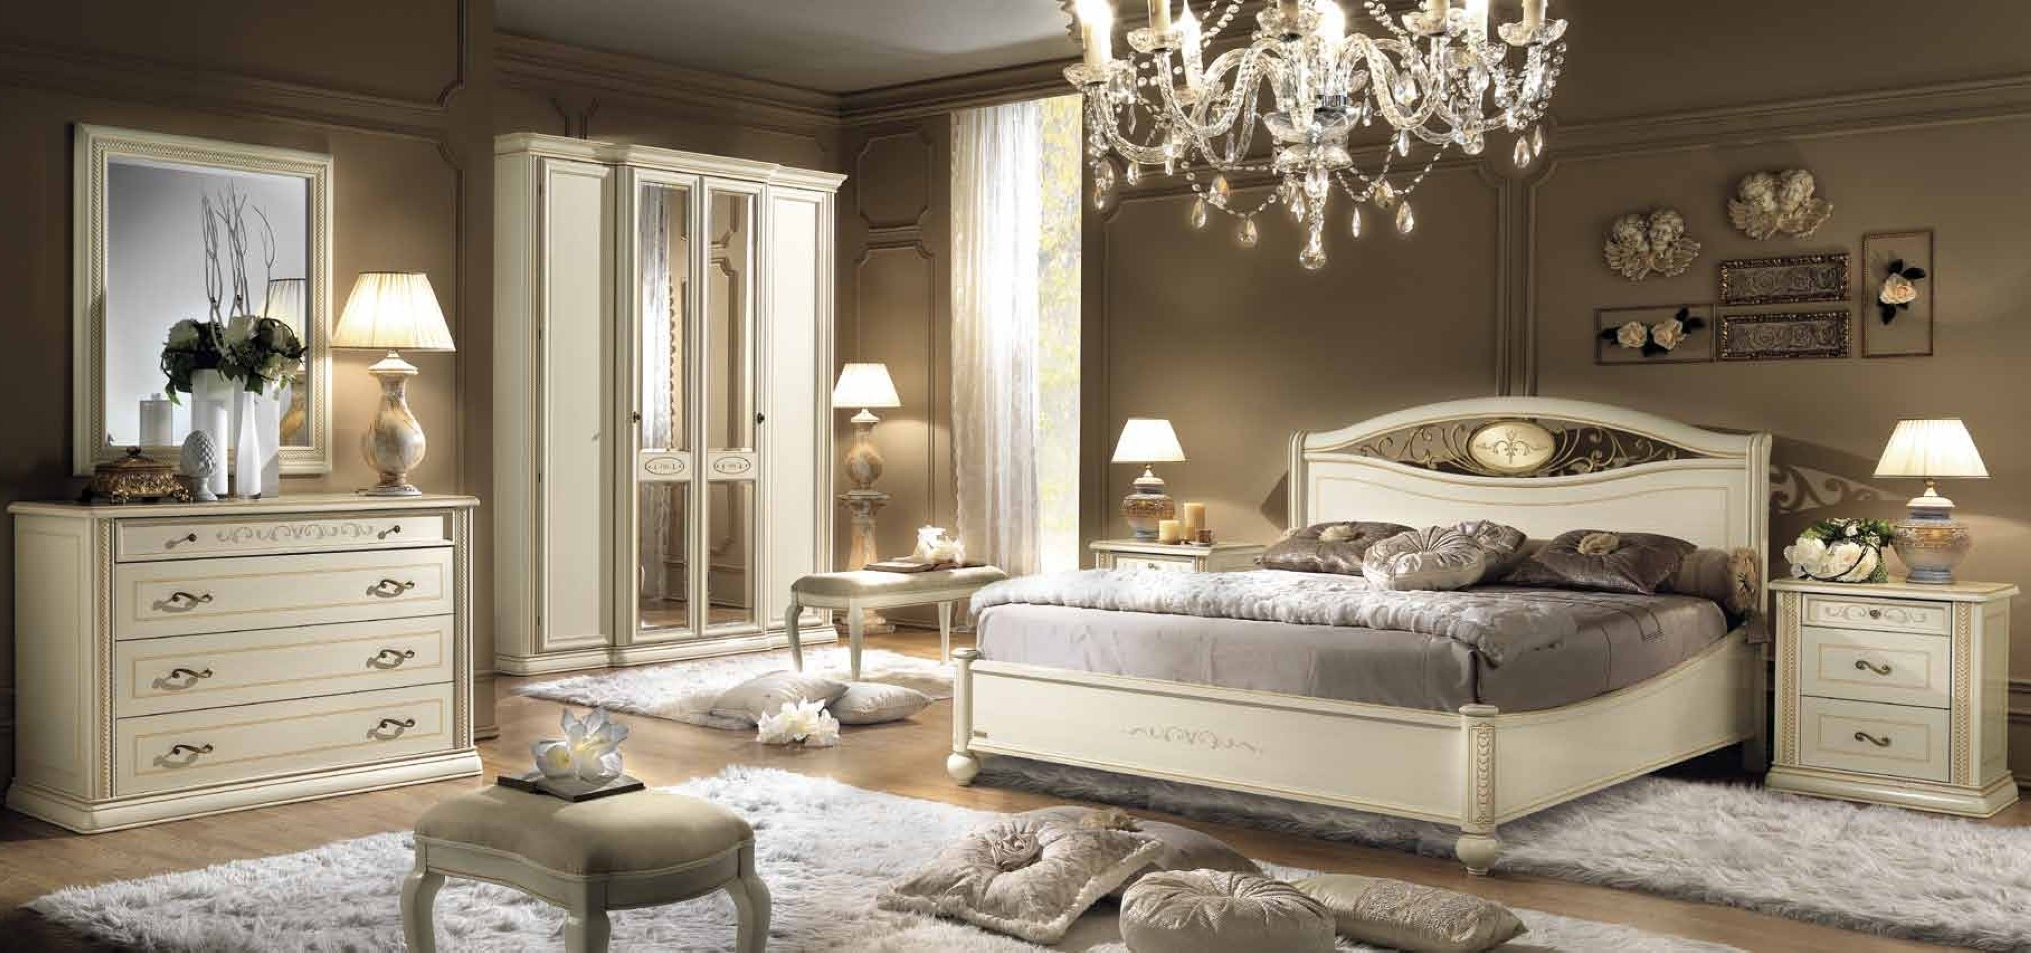 Neat Inspirational Cream Furniture As Modern Bedroom Furniture To The Inspiration Design Ideas With The Best Examples Of The Bedroom (View 3 of 21)